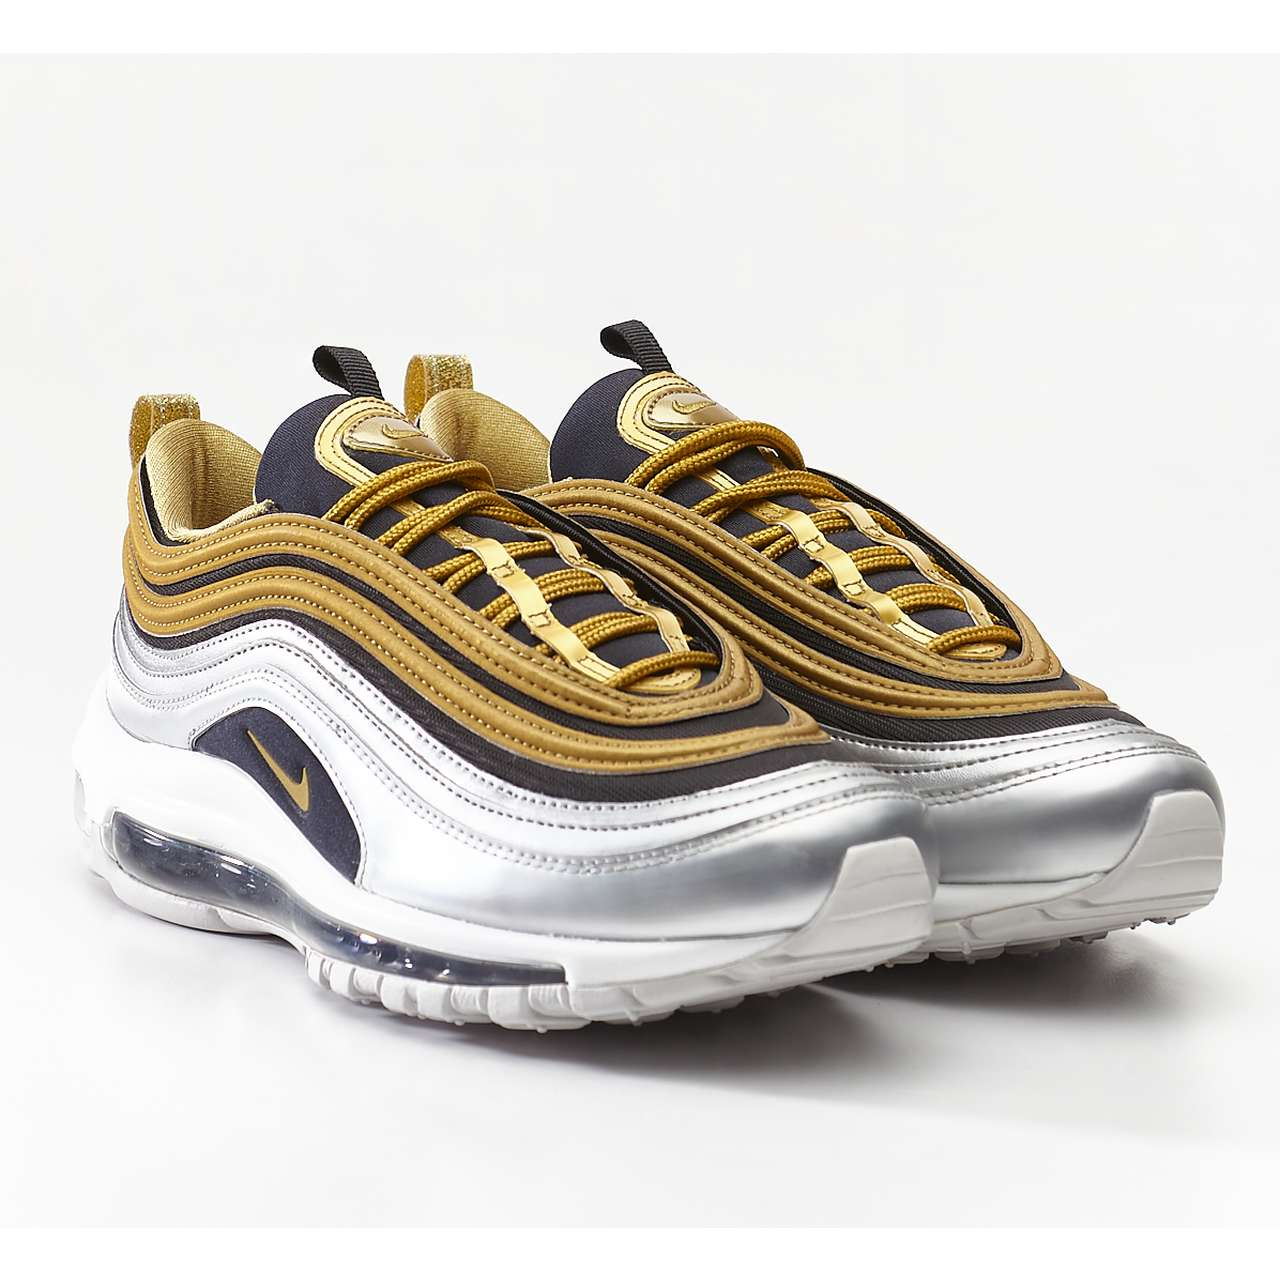 Buty Nike  <br/><small>W AIR MAX 97 SE 700 METALLIC GOLD/METALLIC GOLD </small>  AQ4137-700